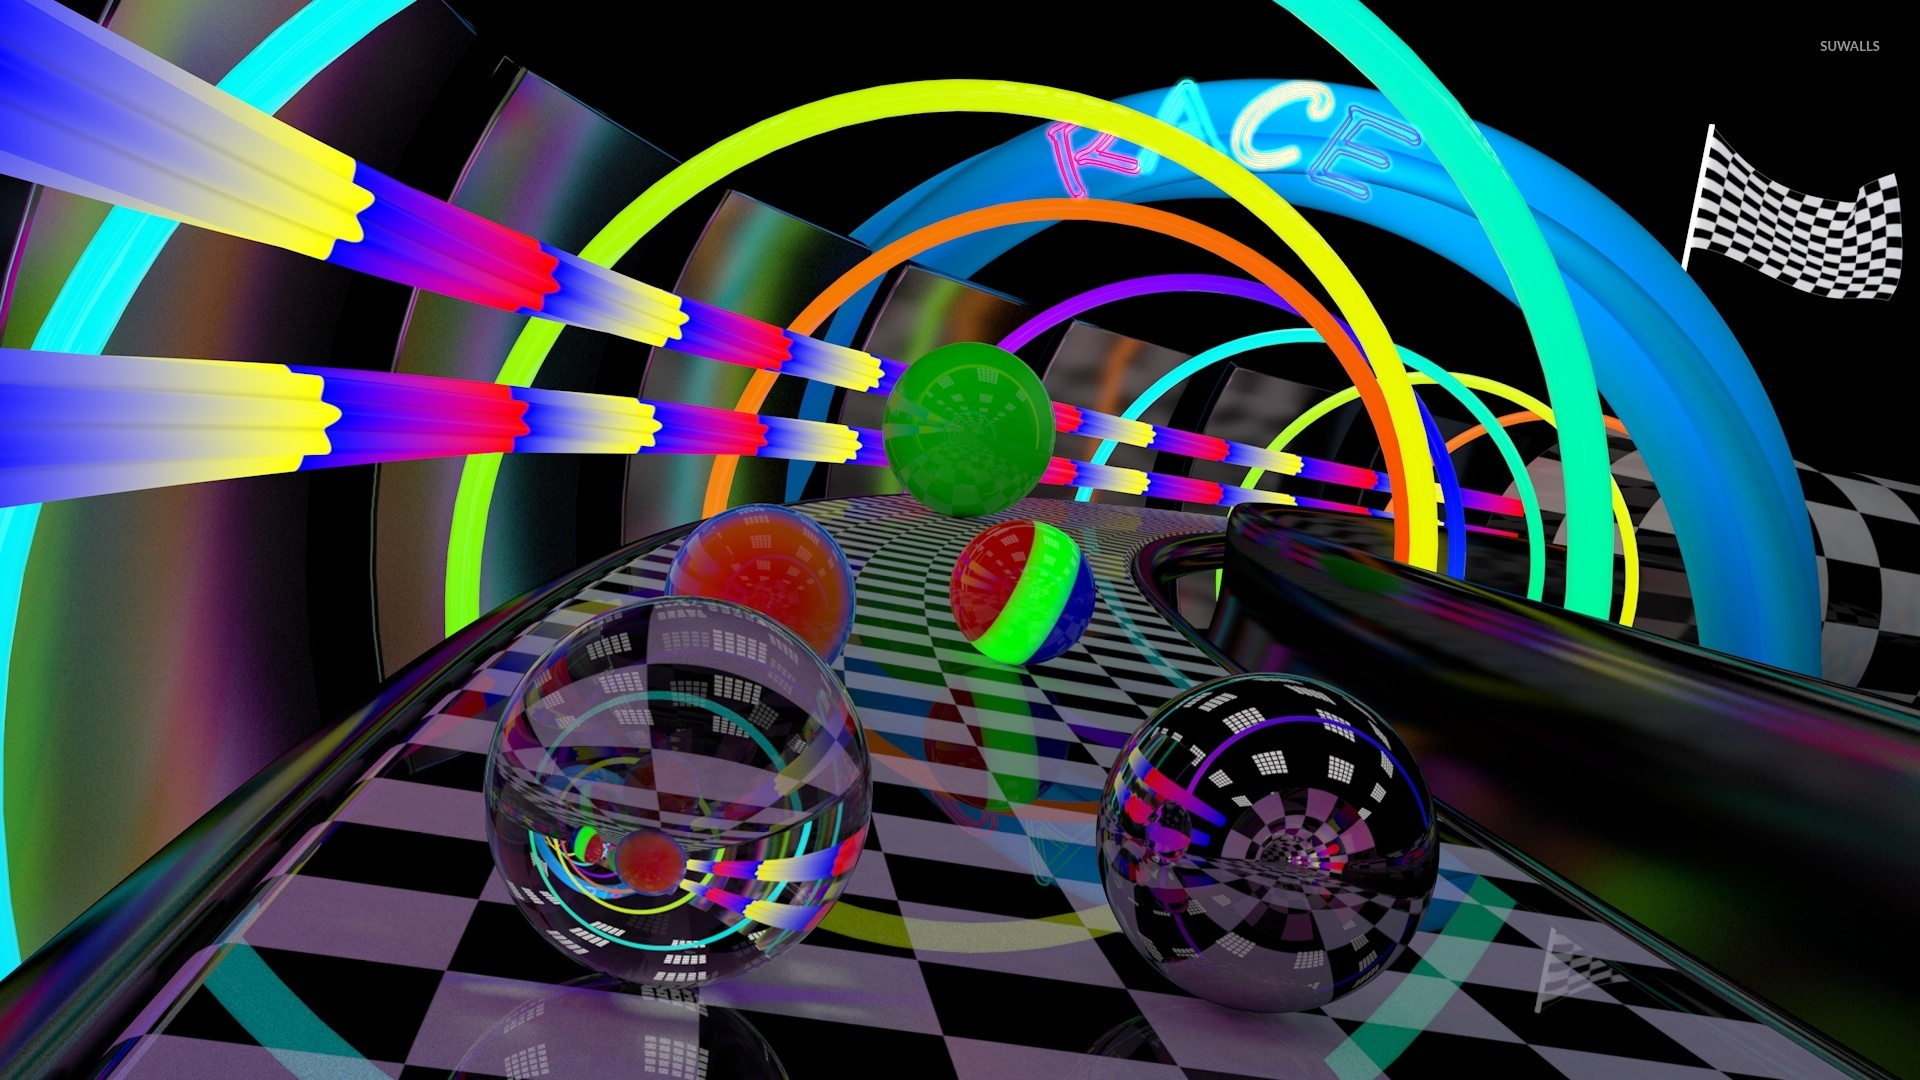 3d Cube Wallpaper Glass Spheres On The Race Track Wallpaper 3d Wallpapers